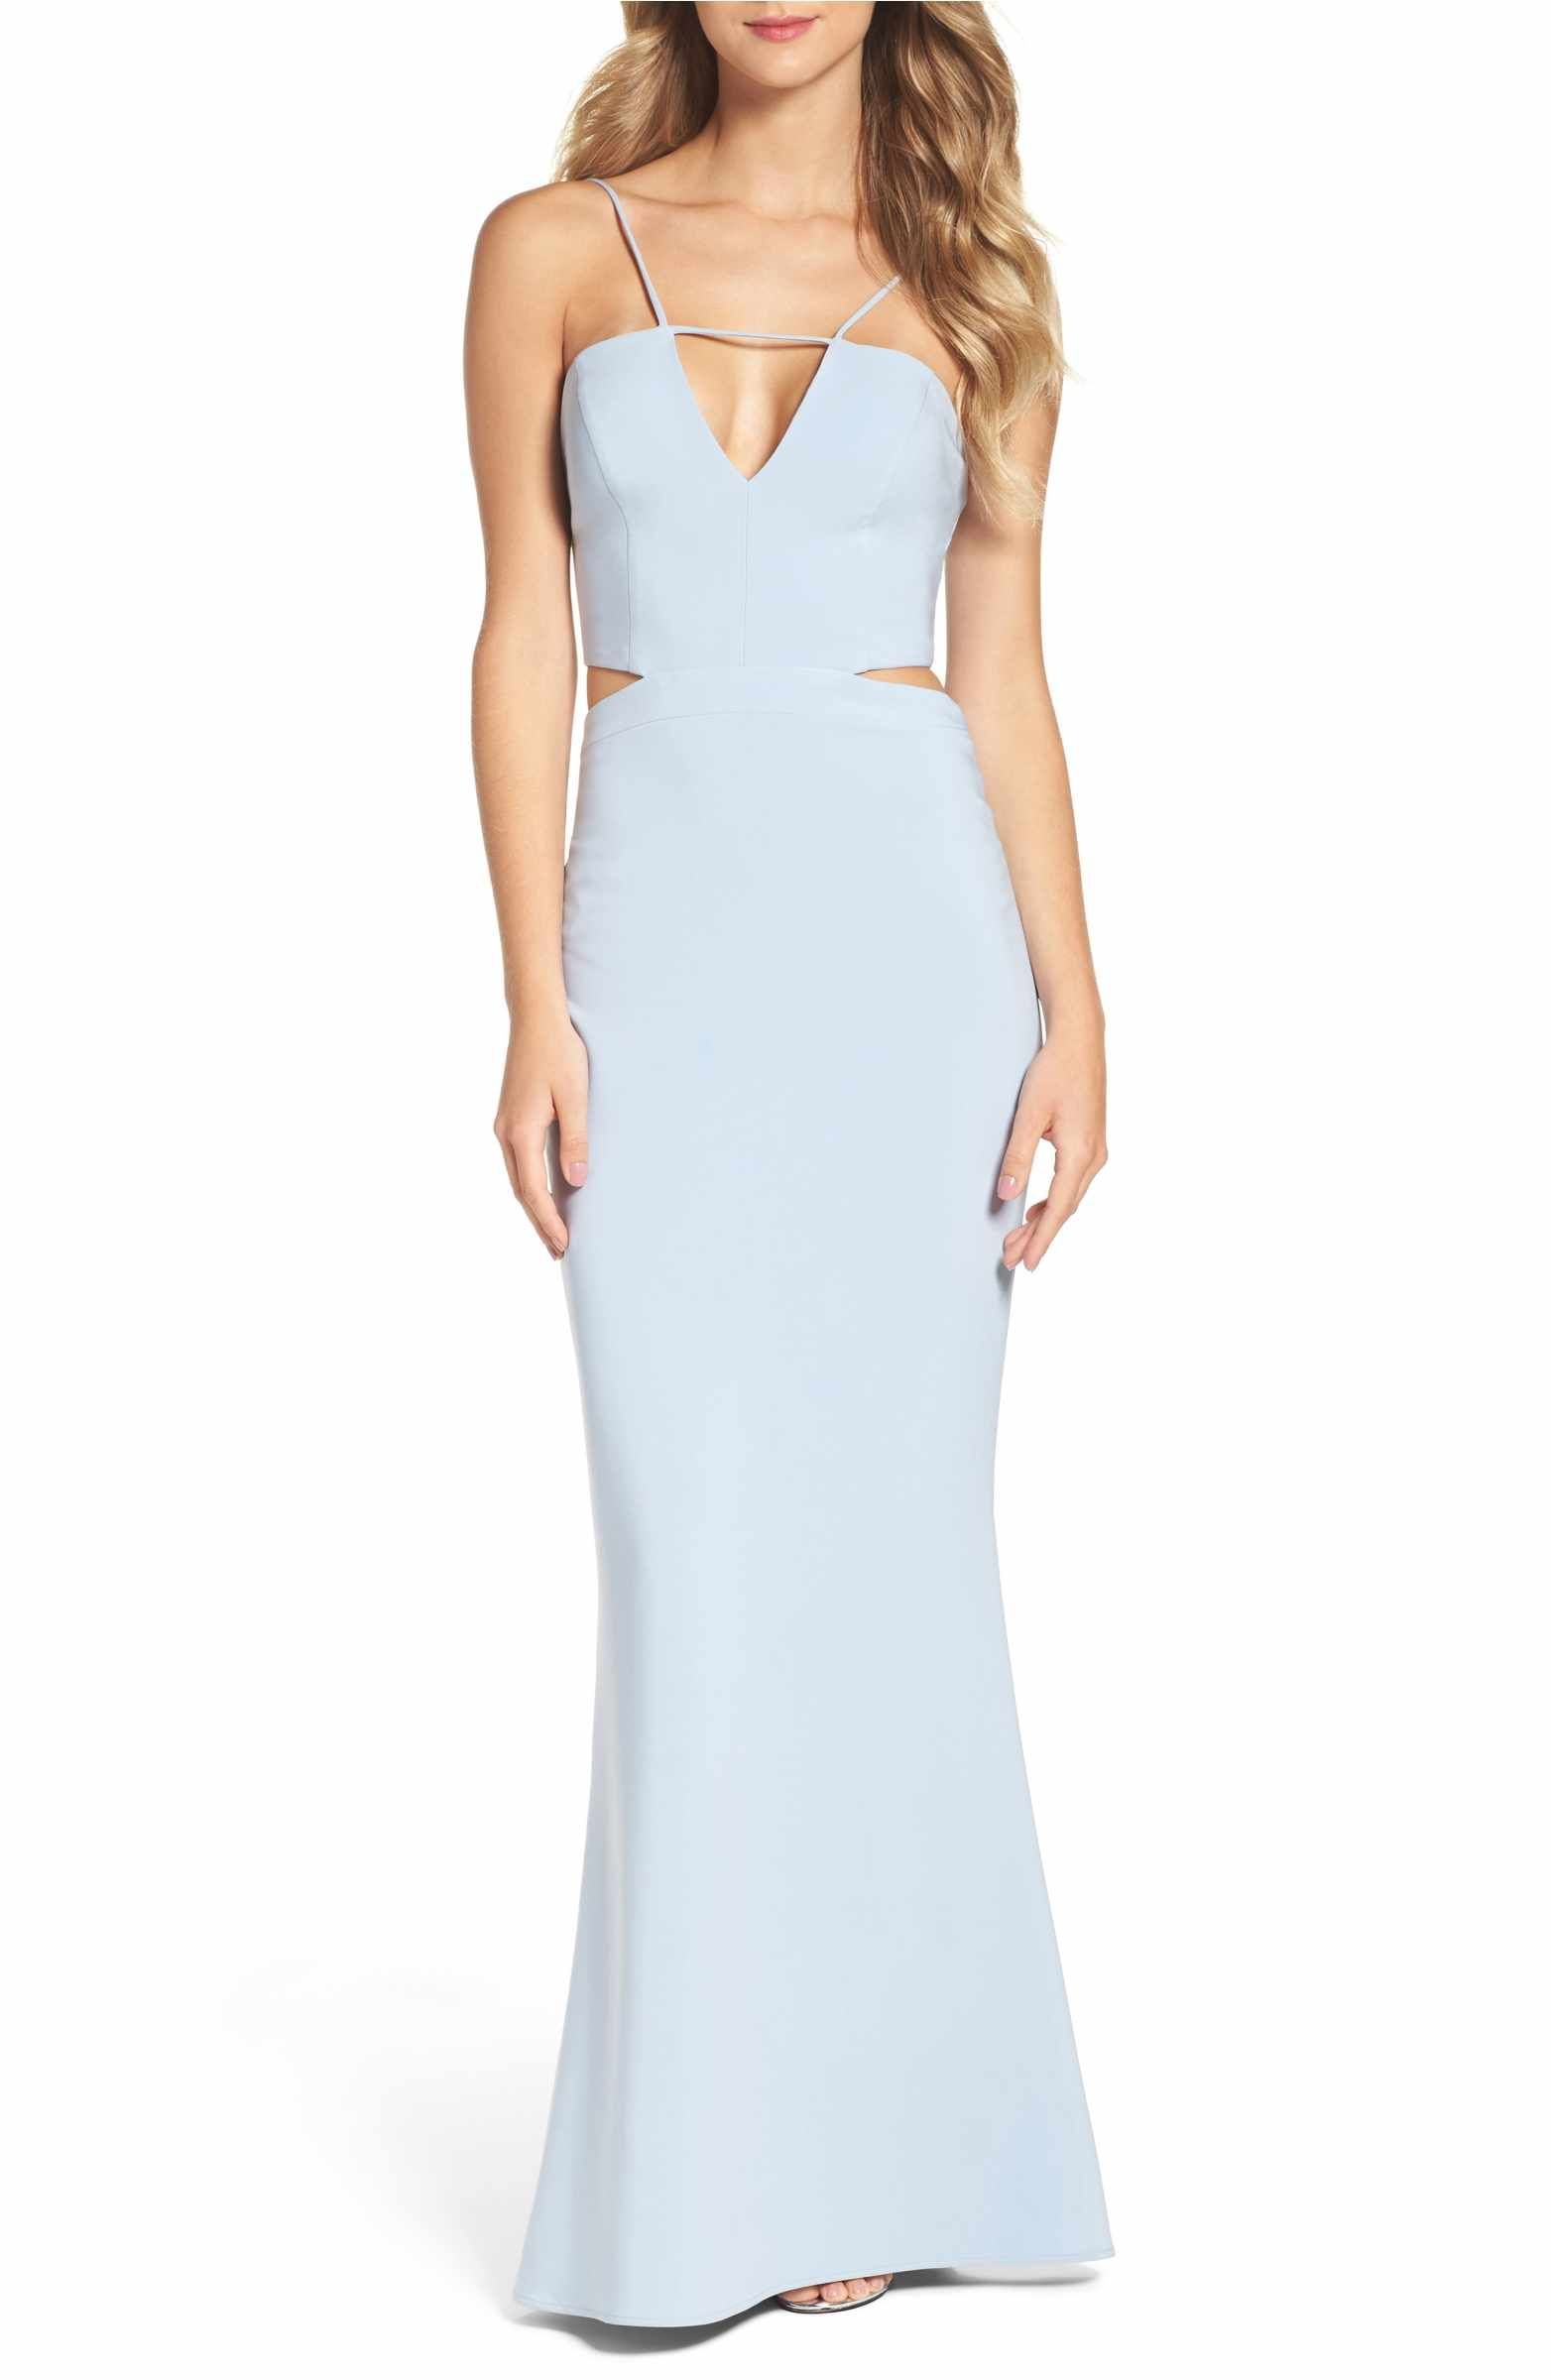 Main image maria bianca nero ashley cutout gown dresses